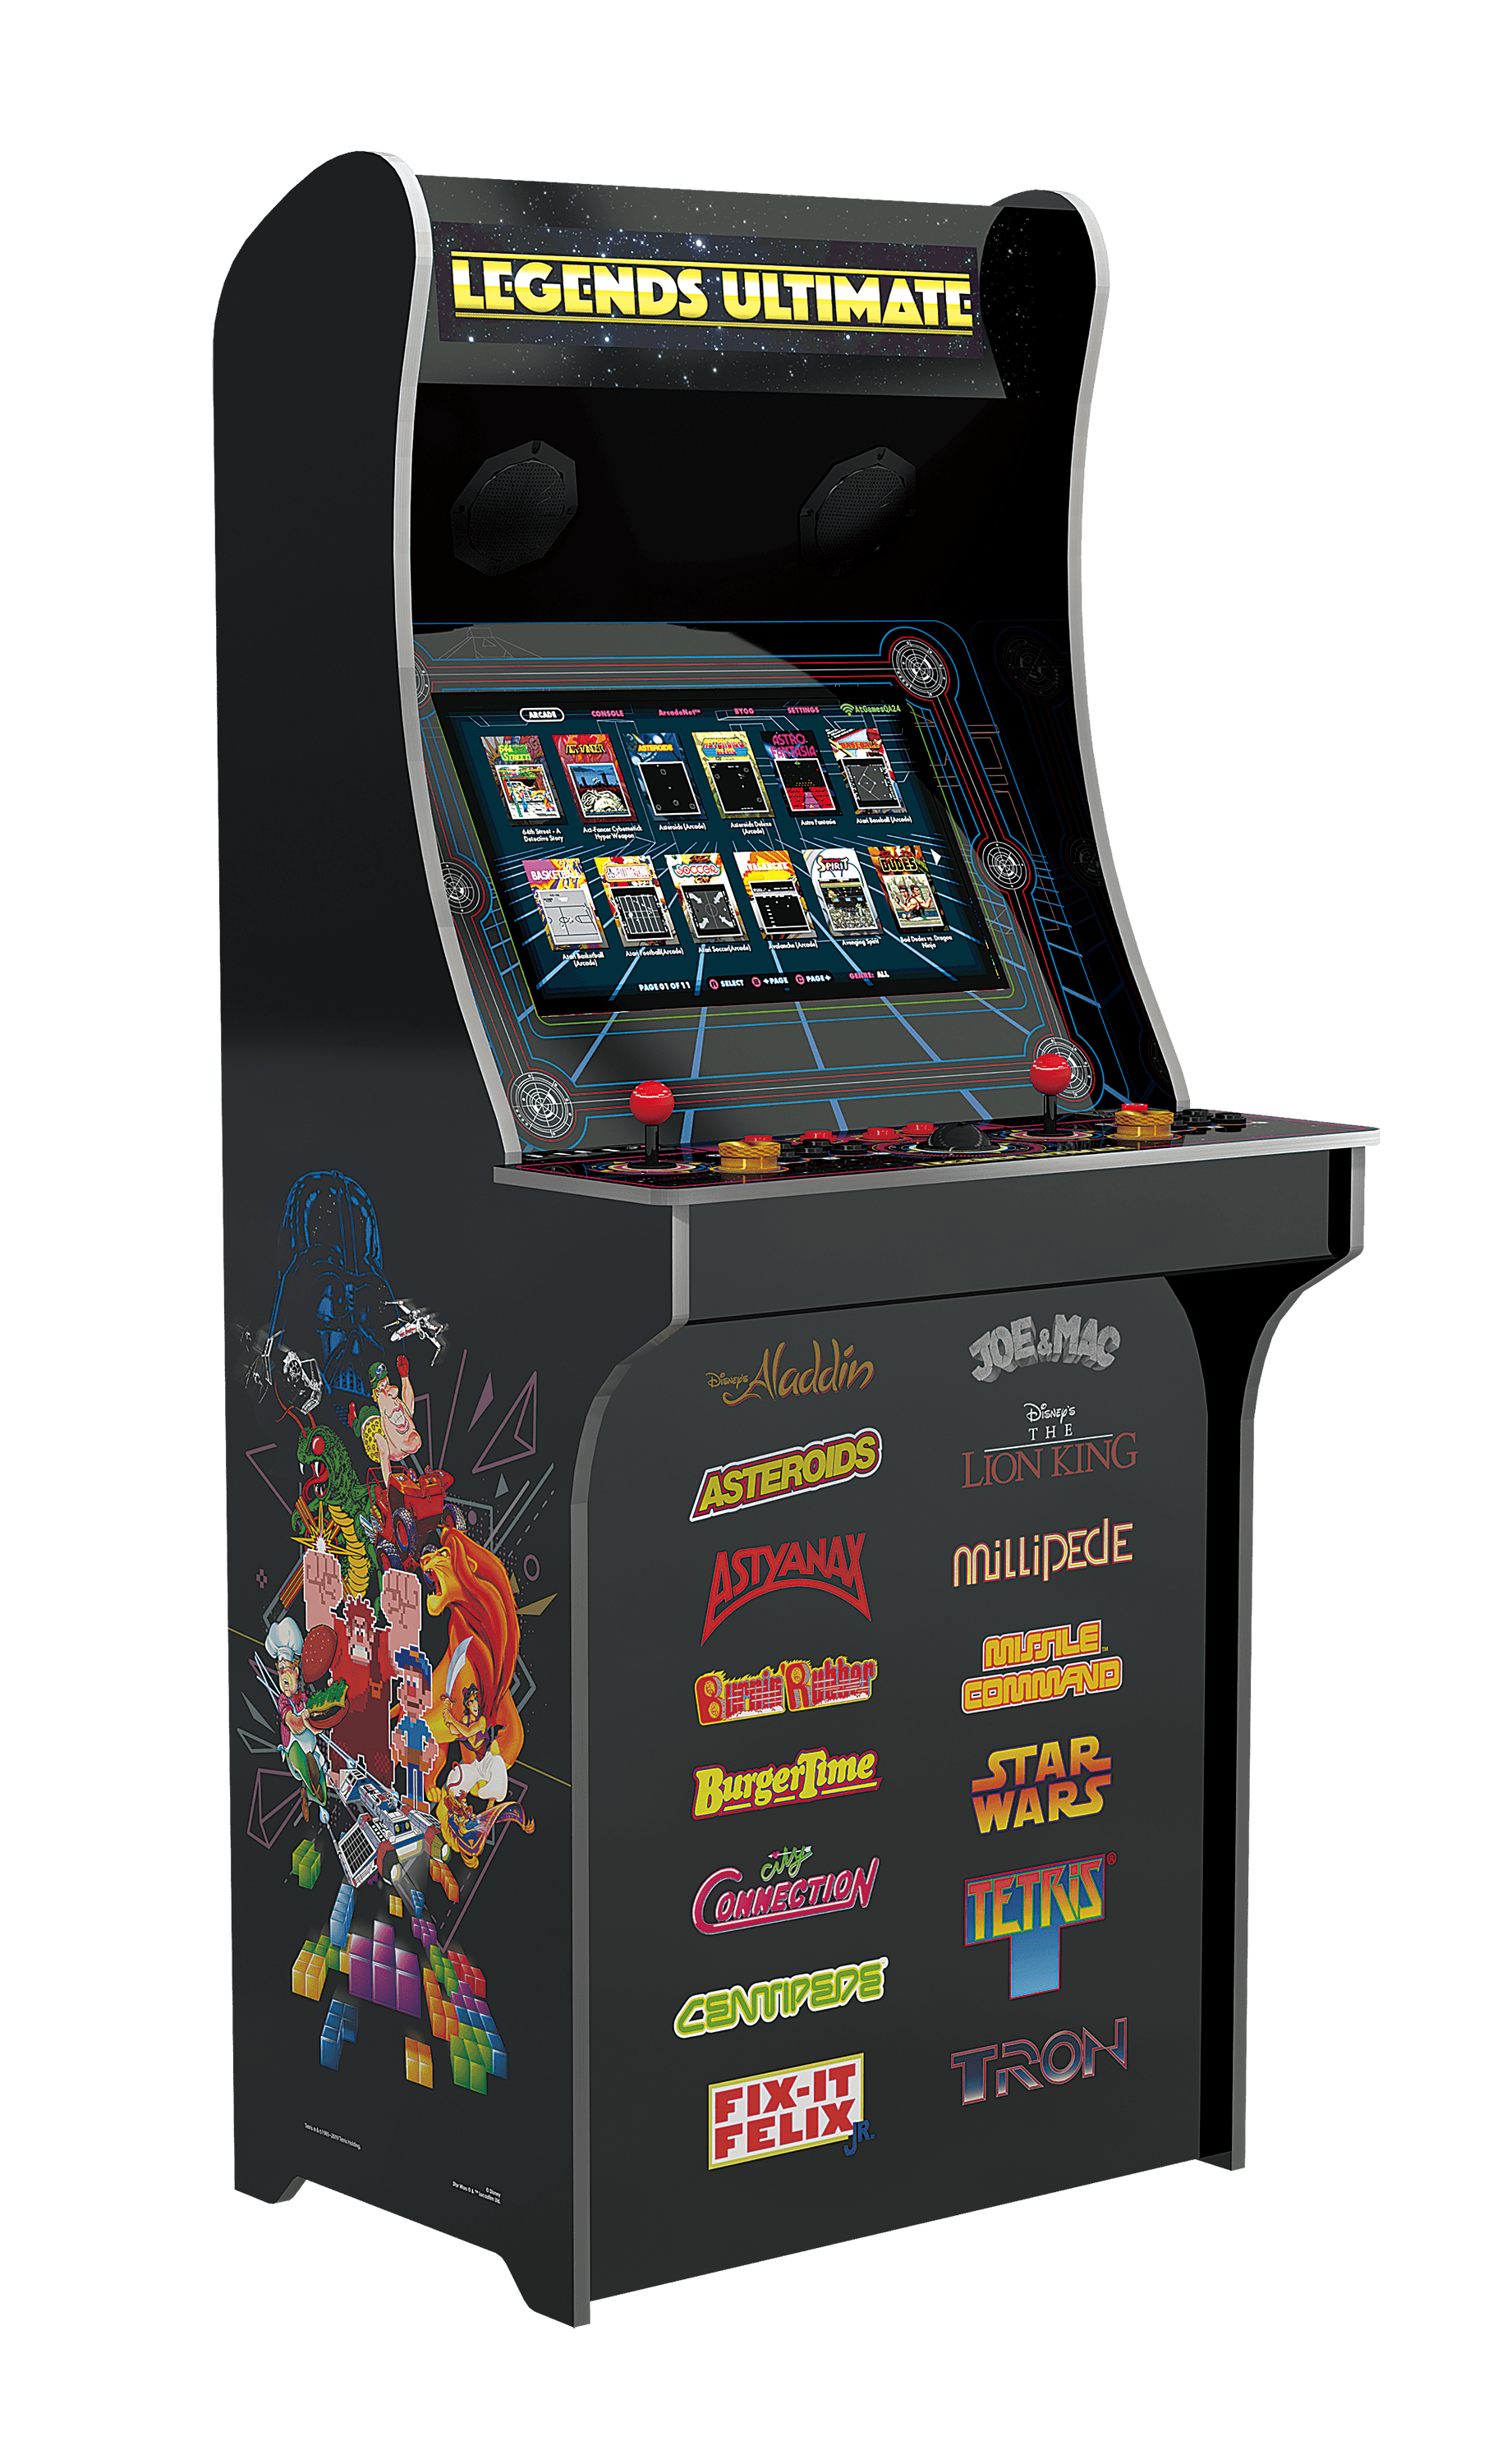 AtGames Legends Ultimate Home Arcade IN STOCK at Walmart! $549.99